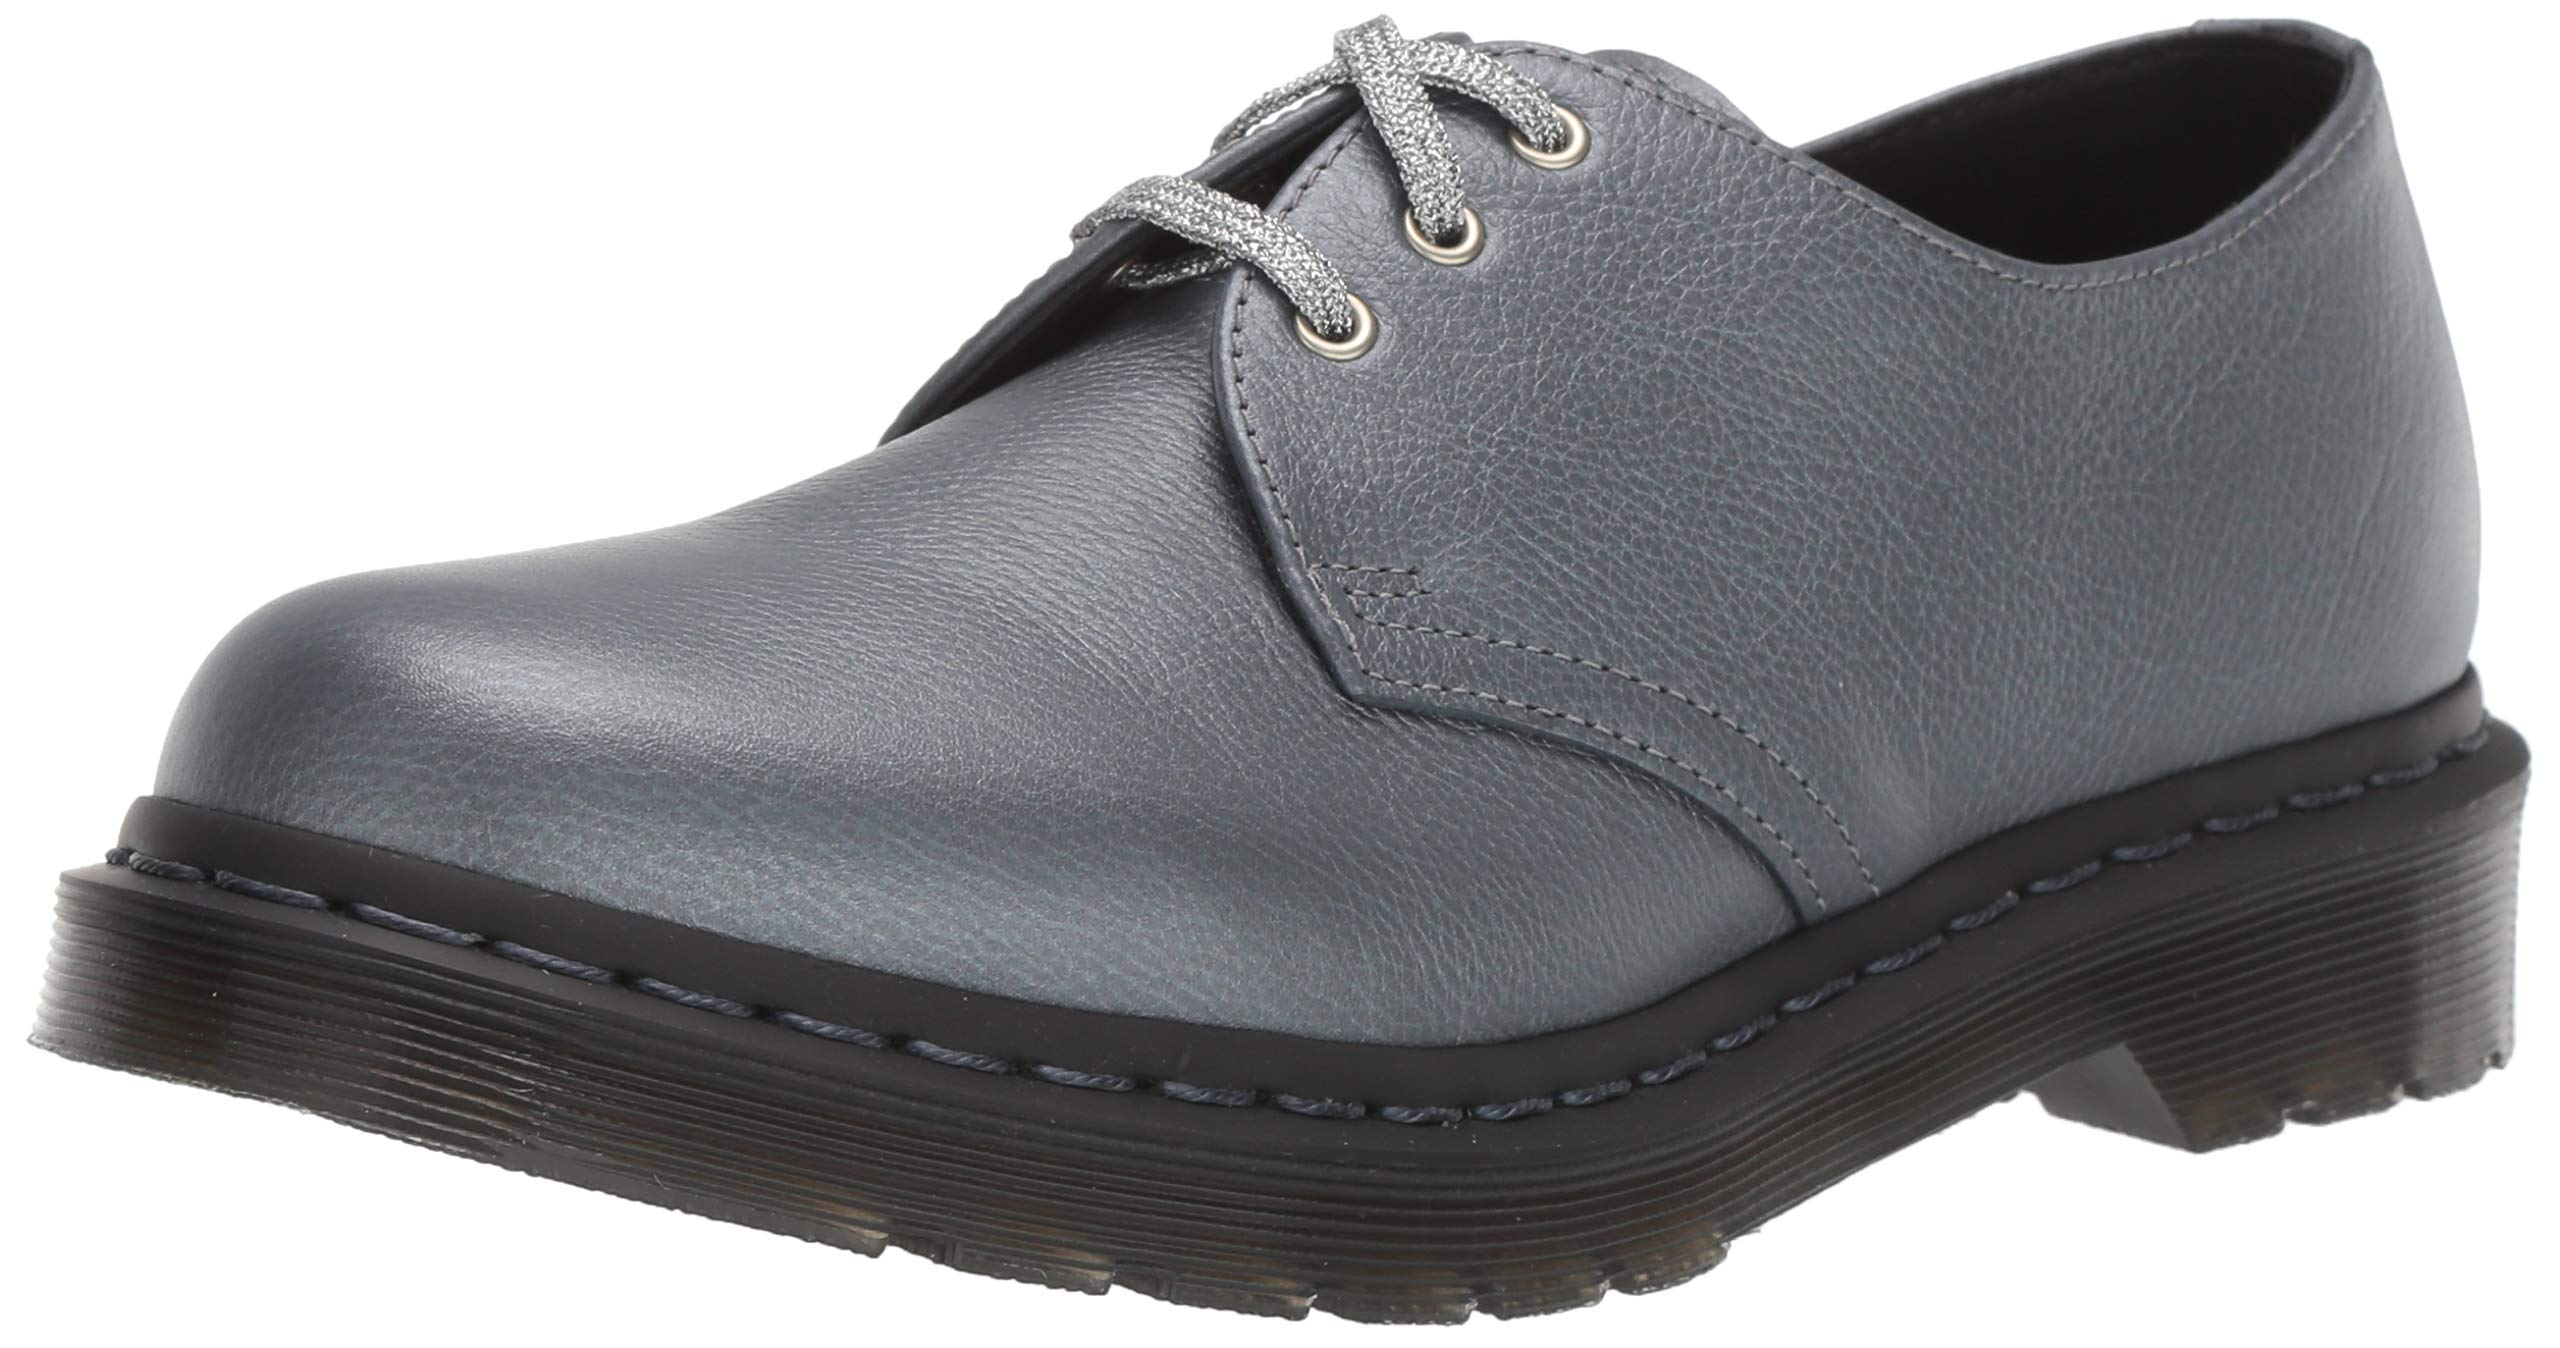 Dr. Martens Women's 1461 Oxford, Gunmetal, 9 M UK (11 US) by Dr. Martens